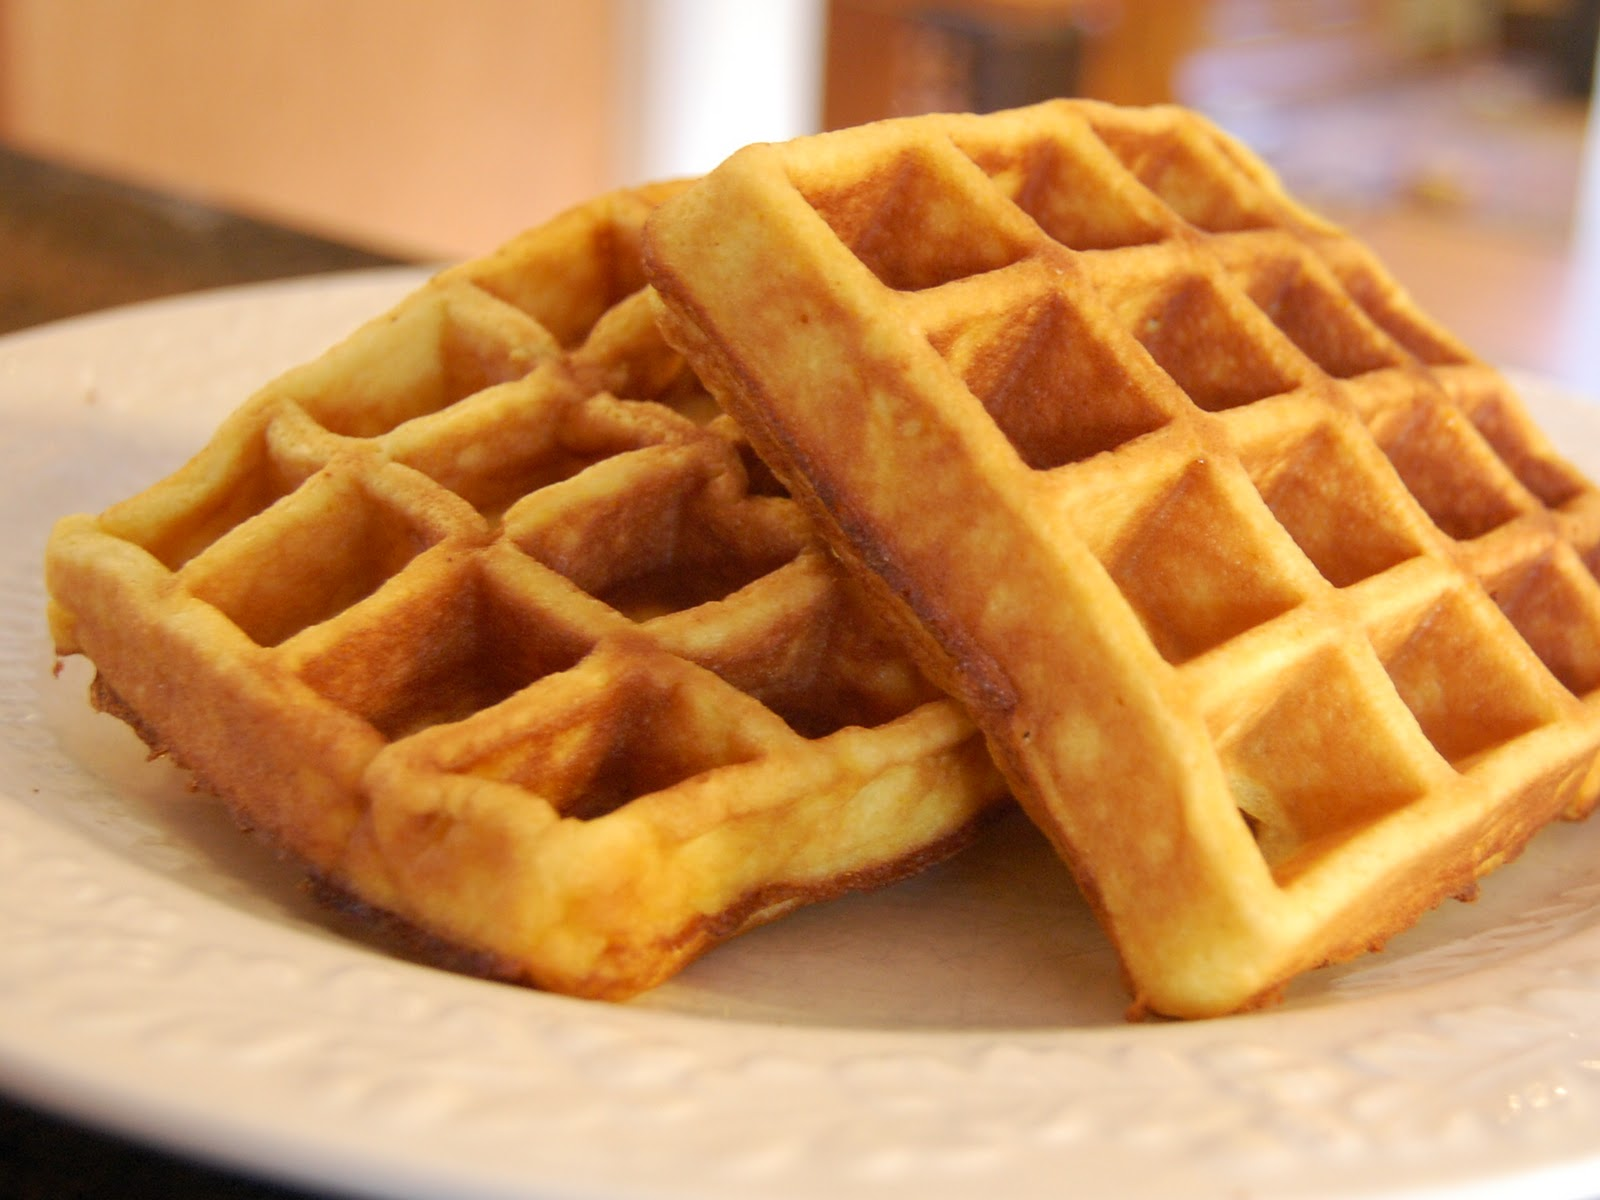 Pogact's Red 3 Algebra 2 Level 1 Blog: How to eat a waffle.